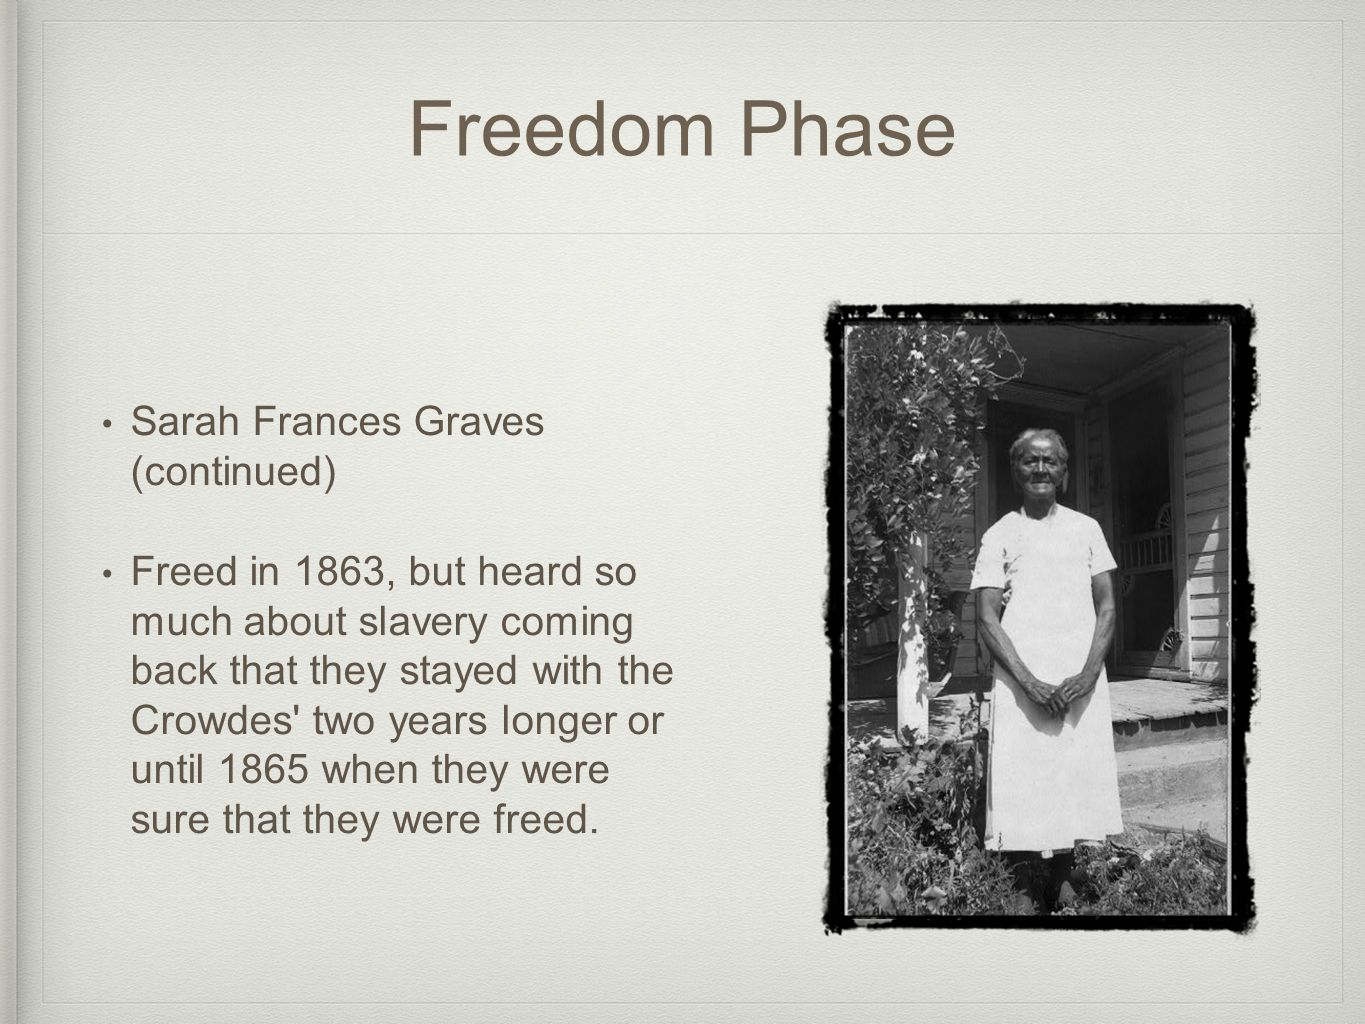 Freedom Phase Sarah Frances Graves (continued) Freed in 1863, but heard so much about slavery coming back that they stayed with the Crowdes two years longer or until 1865 when they were sure that they were freed.